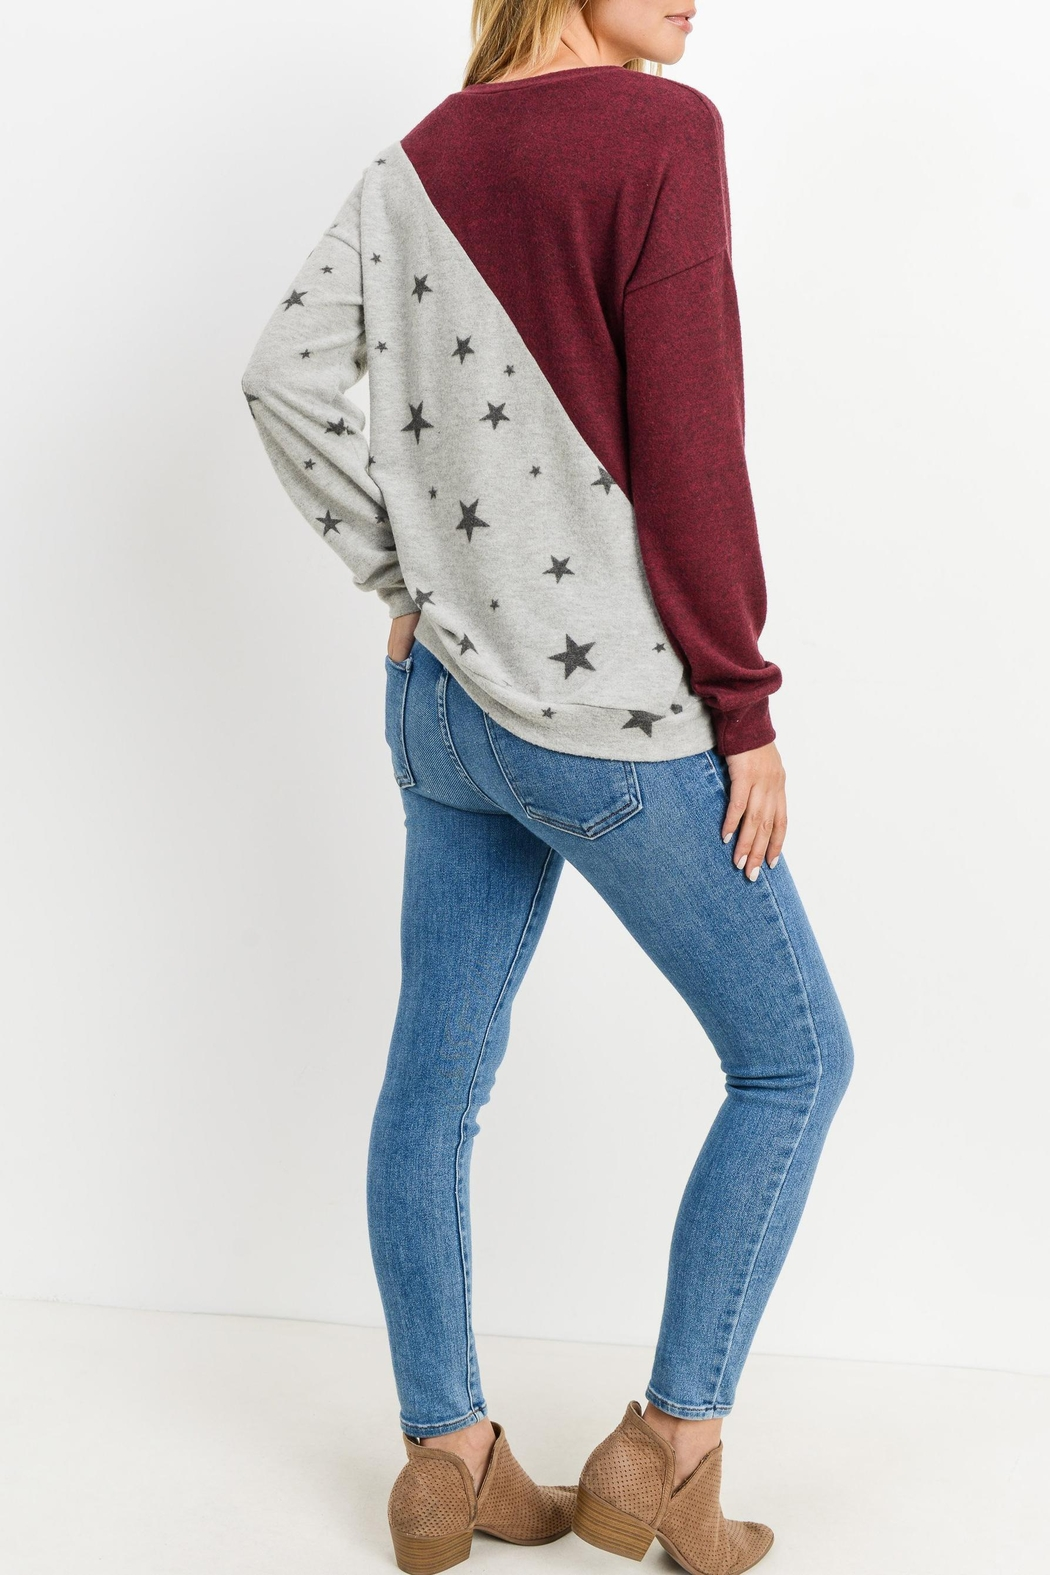 Lazy Sundays Color-Block Star Top - Front Full Image